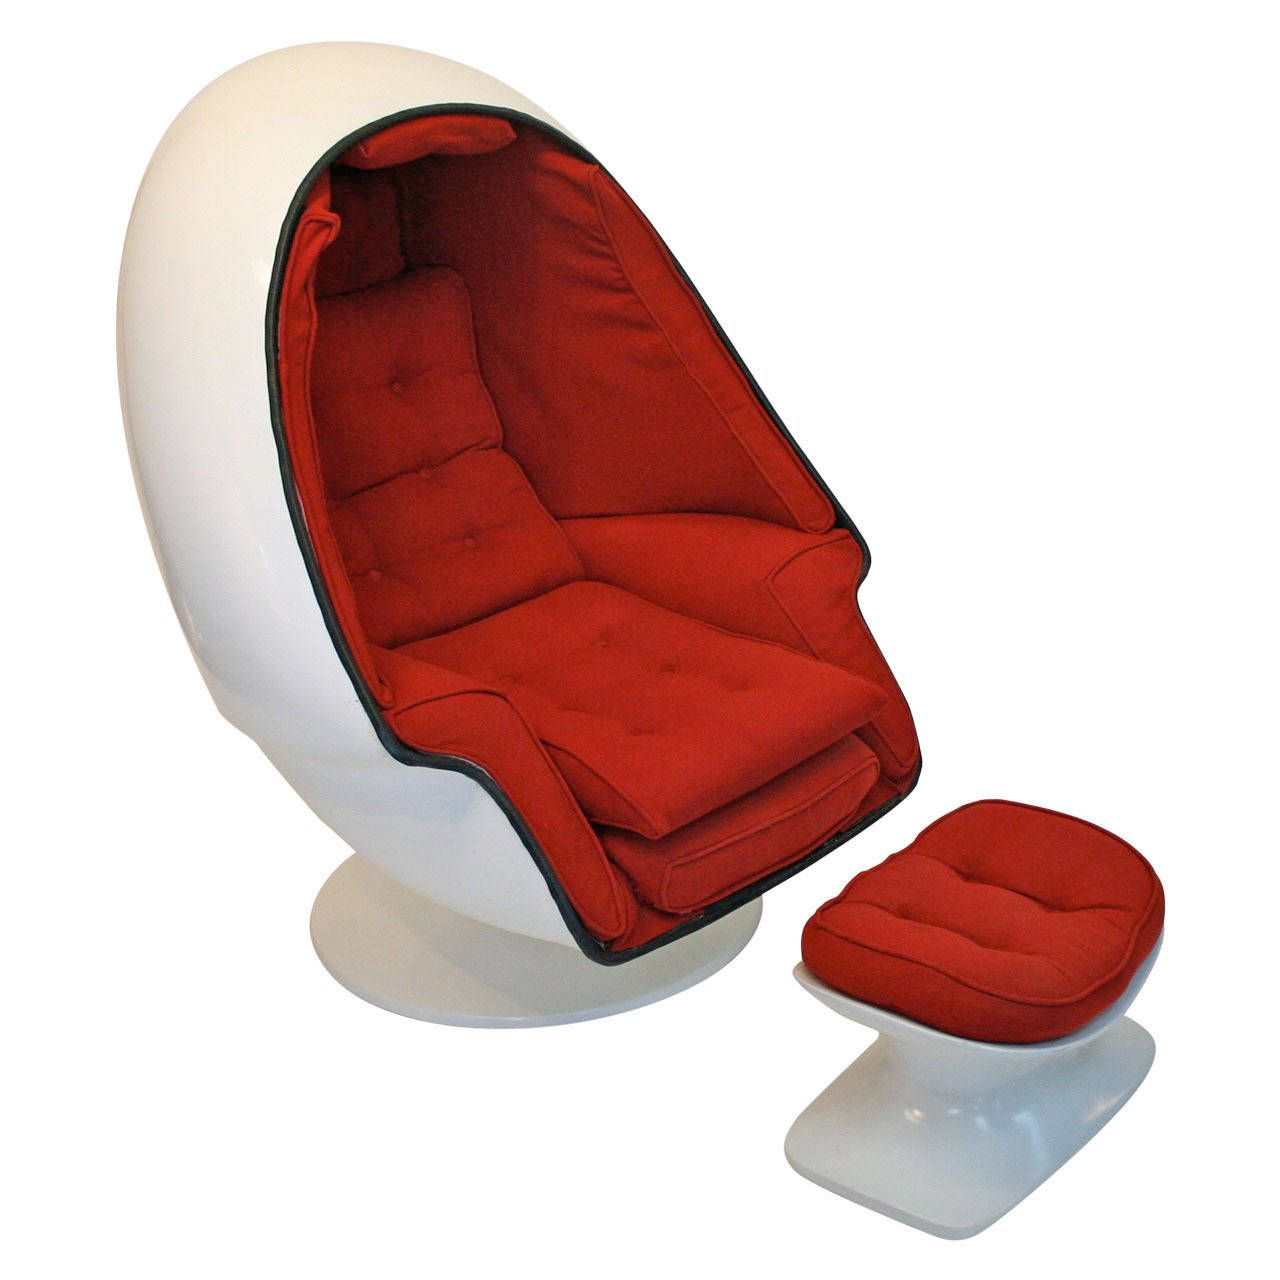 Egg Chairs For Sale Cheap Rare Tony Casello Associates Egg Chair And Ottoman For Harman